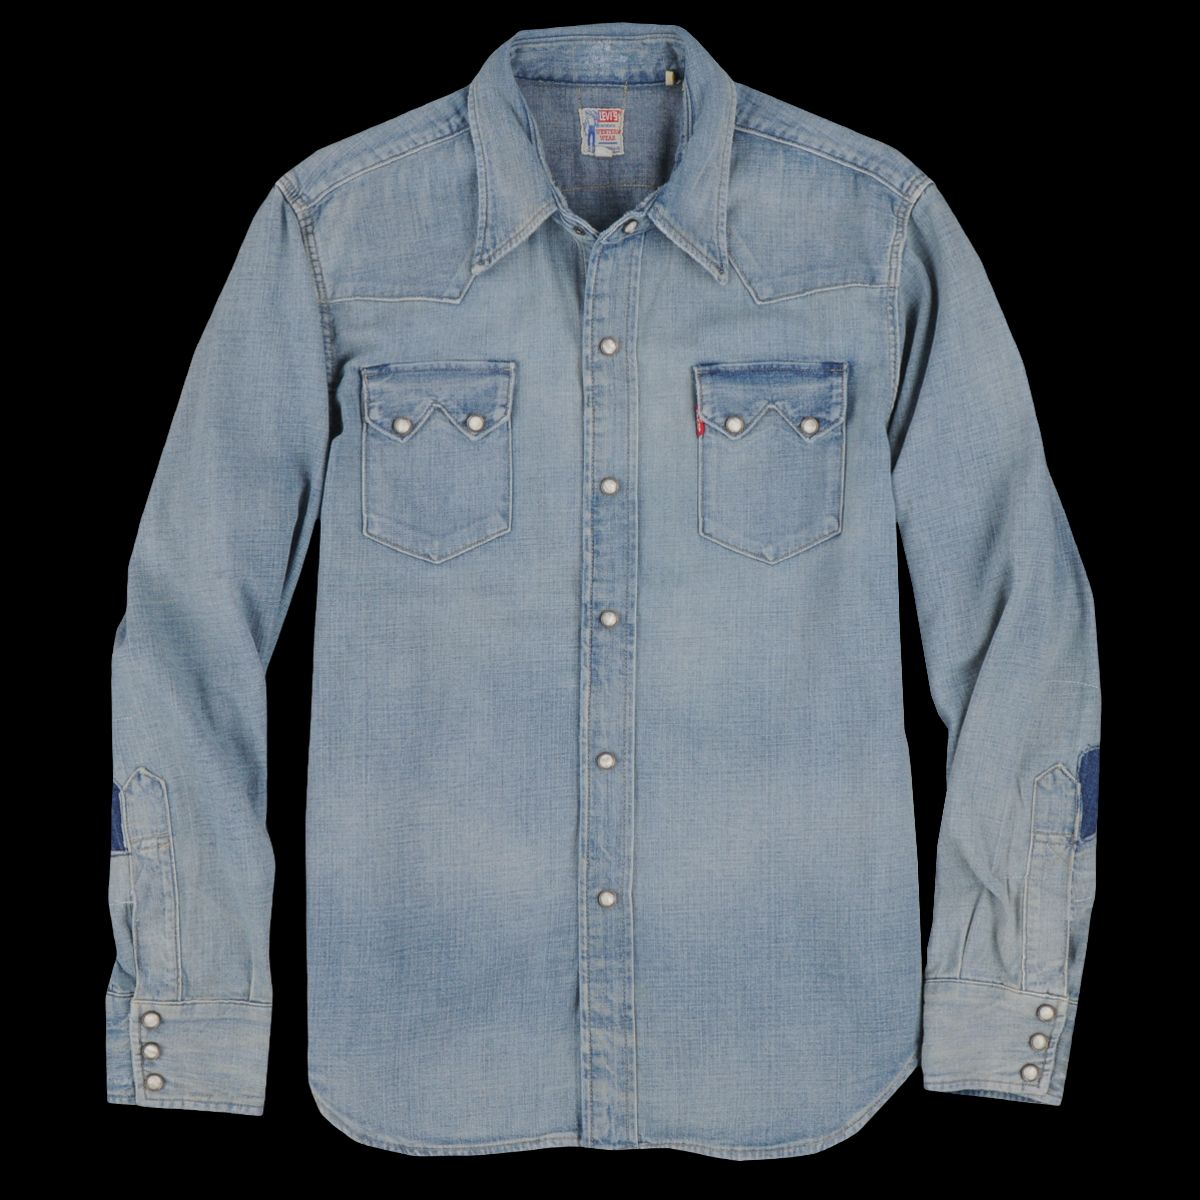 a55086b85a Levi s Vintage Clothing - 1955 Sawtooth Shirt in Silverton